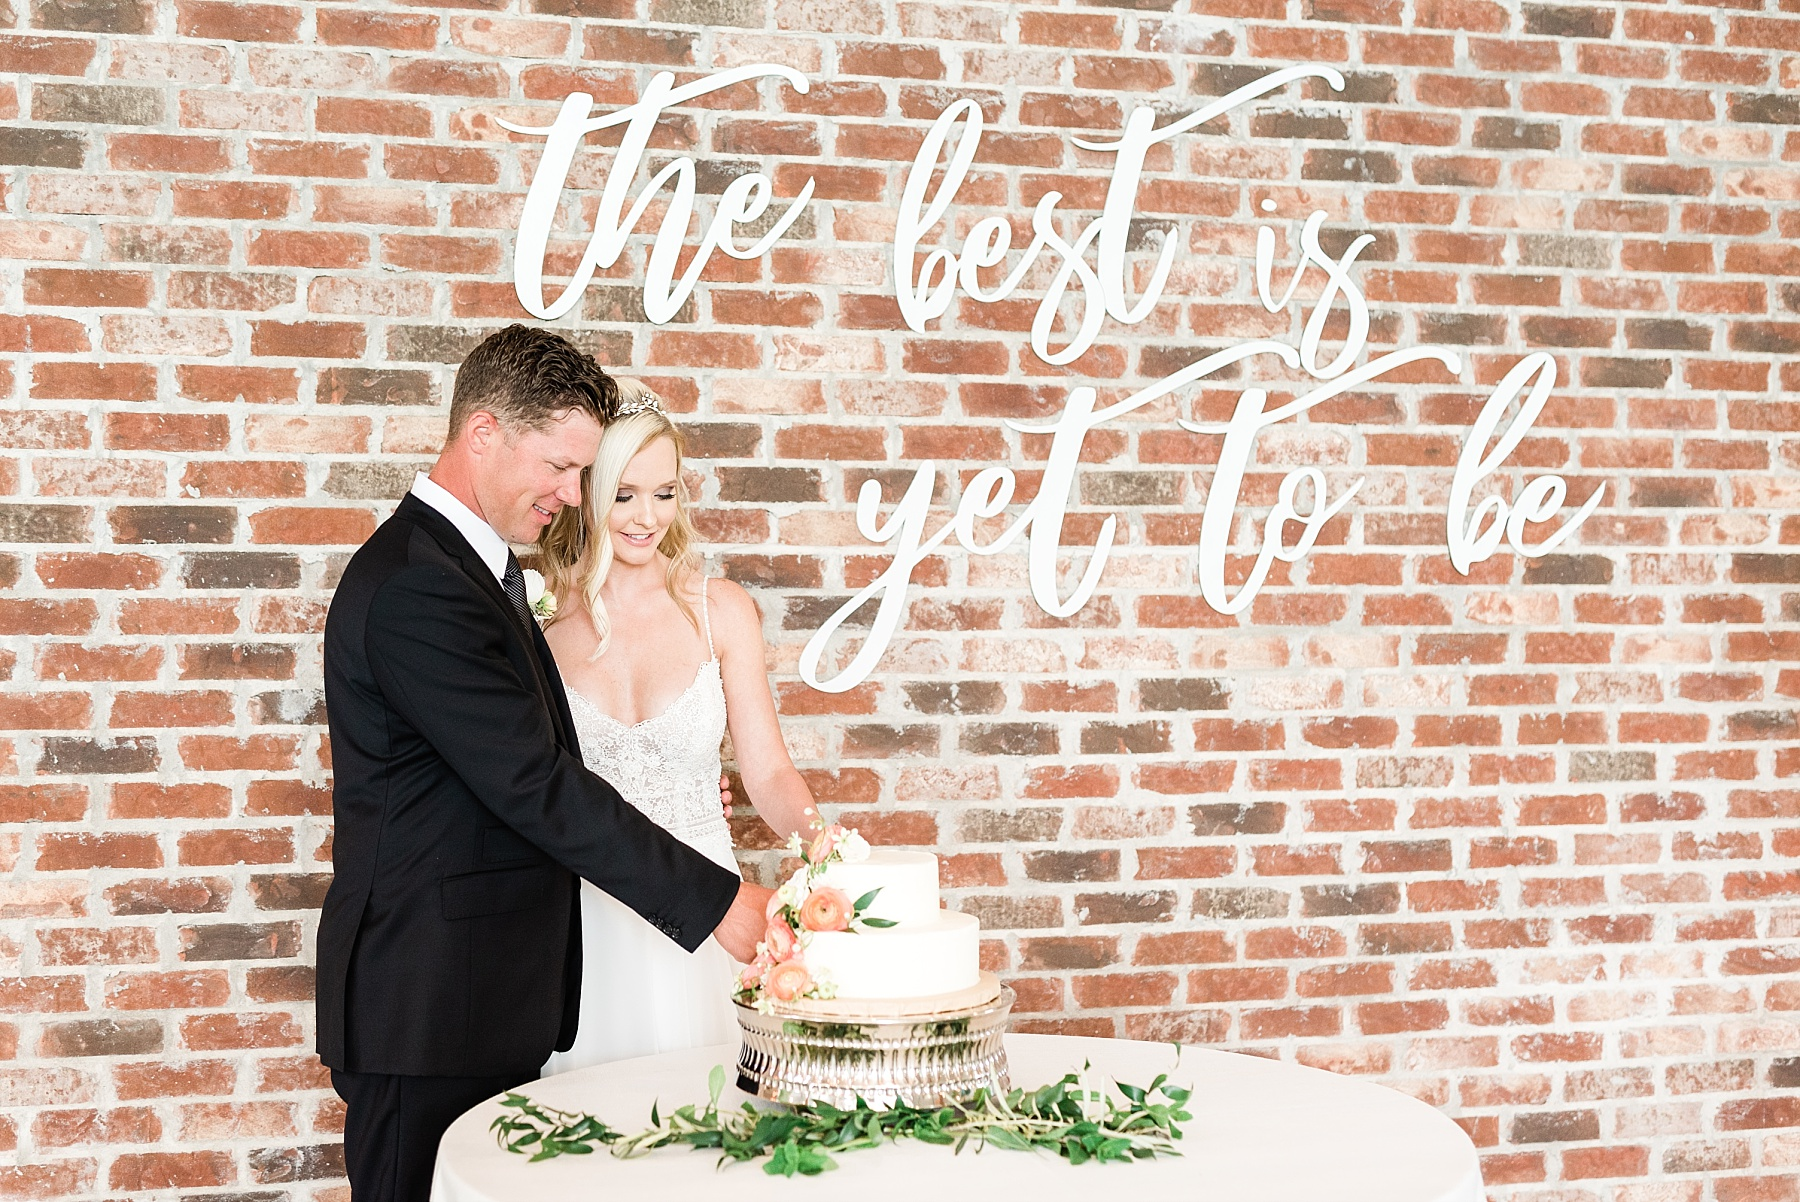 Textural Organic Wedding in All White Venue by Kelsi Kliethermes Wedding Photographer - Missouri, Midwest, and Destinations_0121.jpg